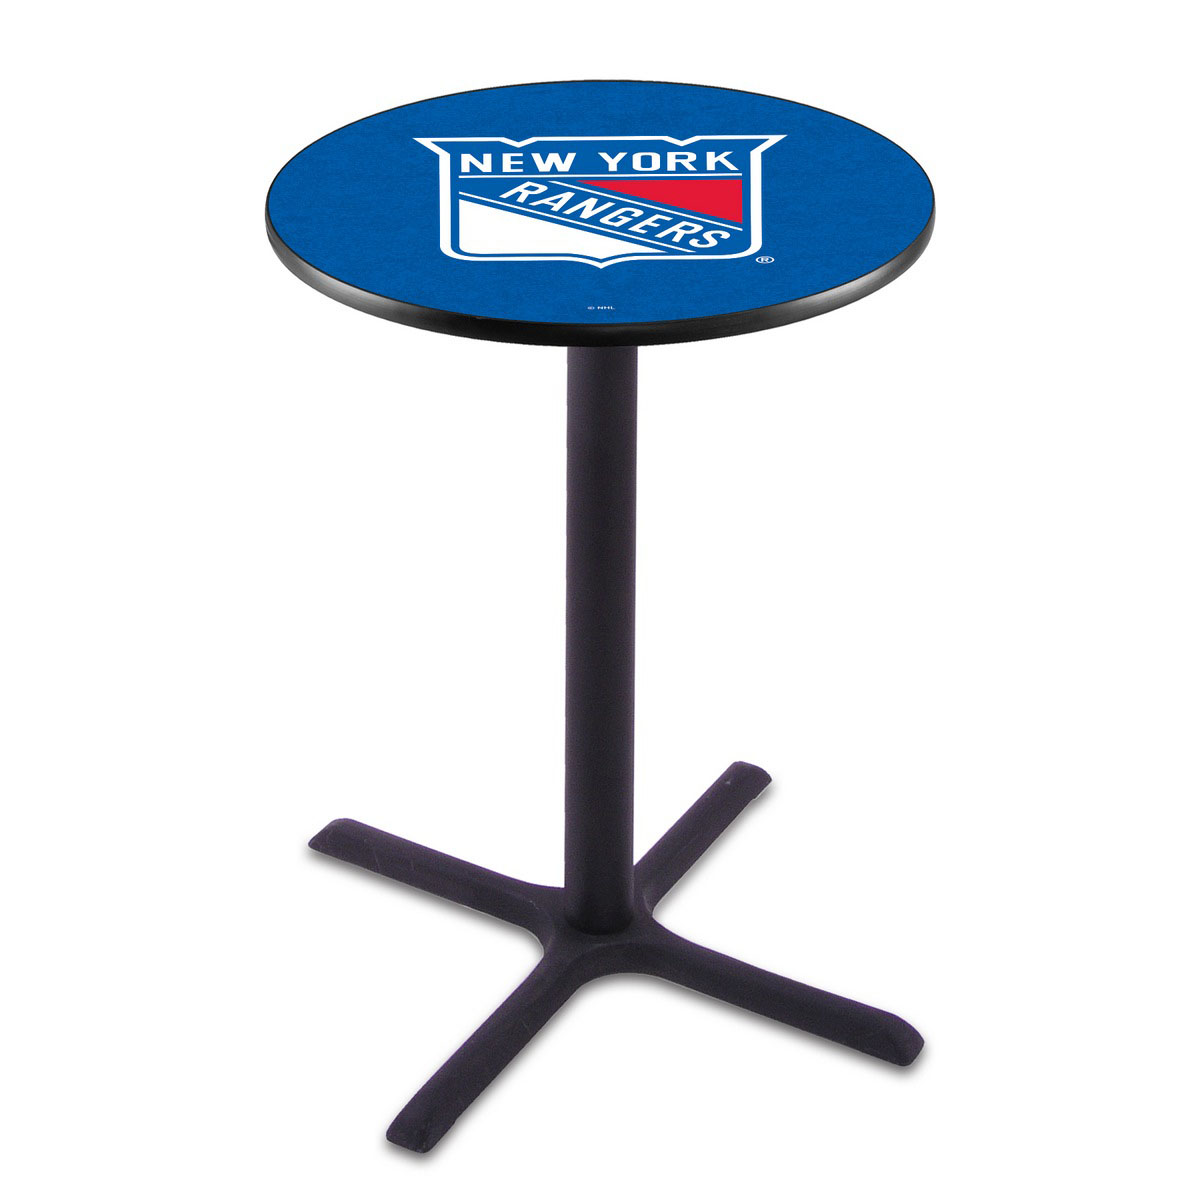 Info about New York Rangers Wrinkle Pub Table Product Photo